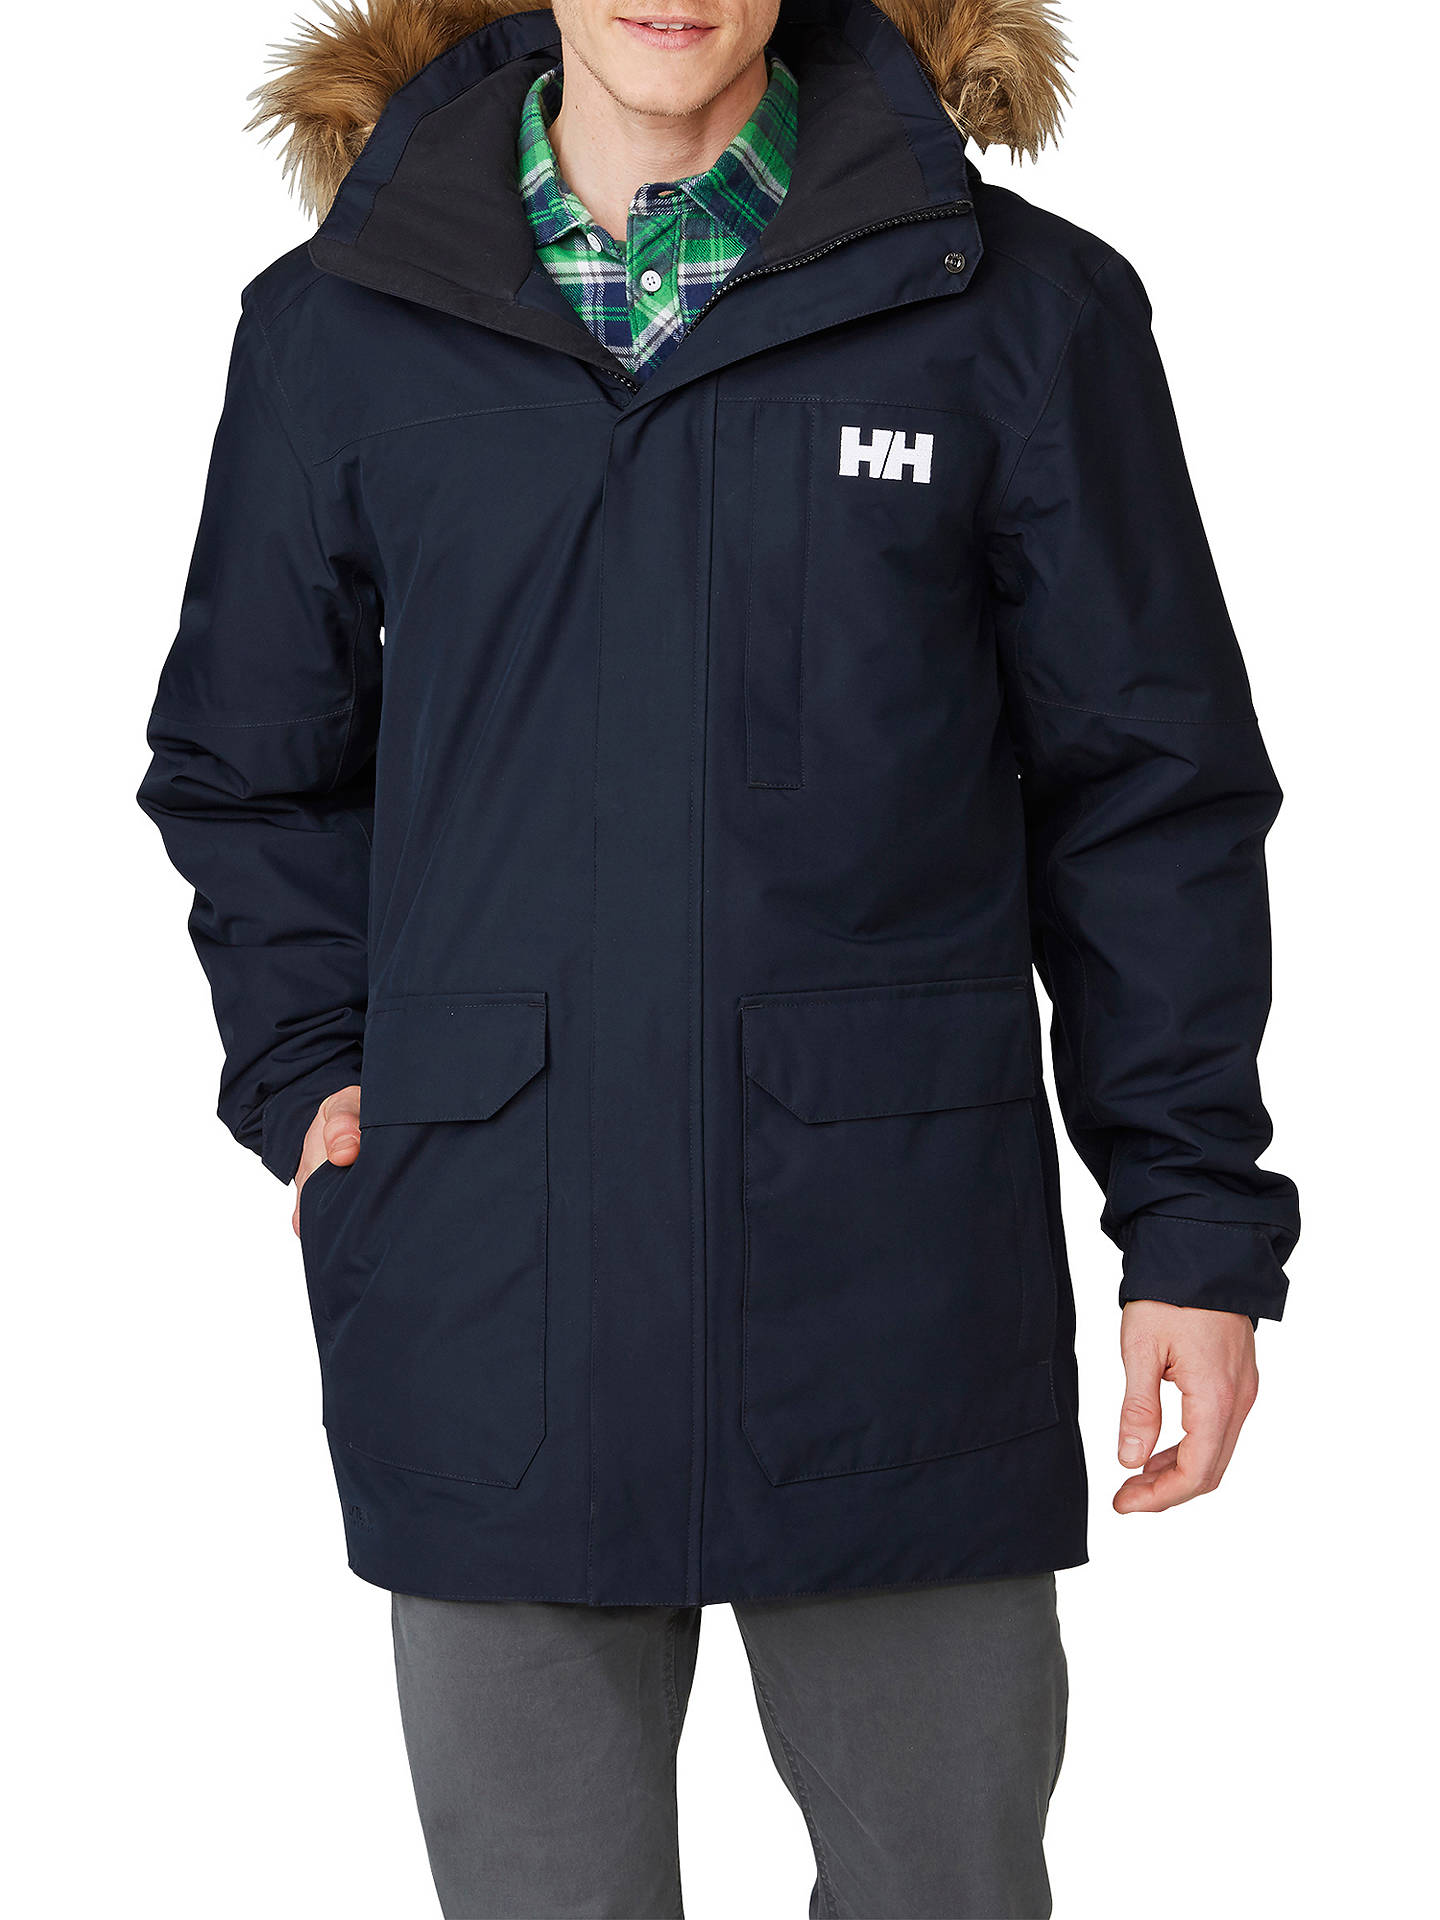 266ae93c81ab Buy Helly Hansen Dubliner Waterproof Insulated Men s Parka Jacket